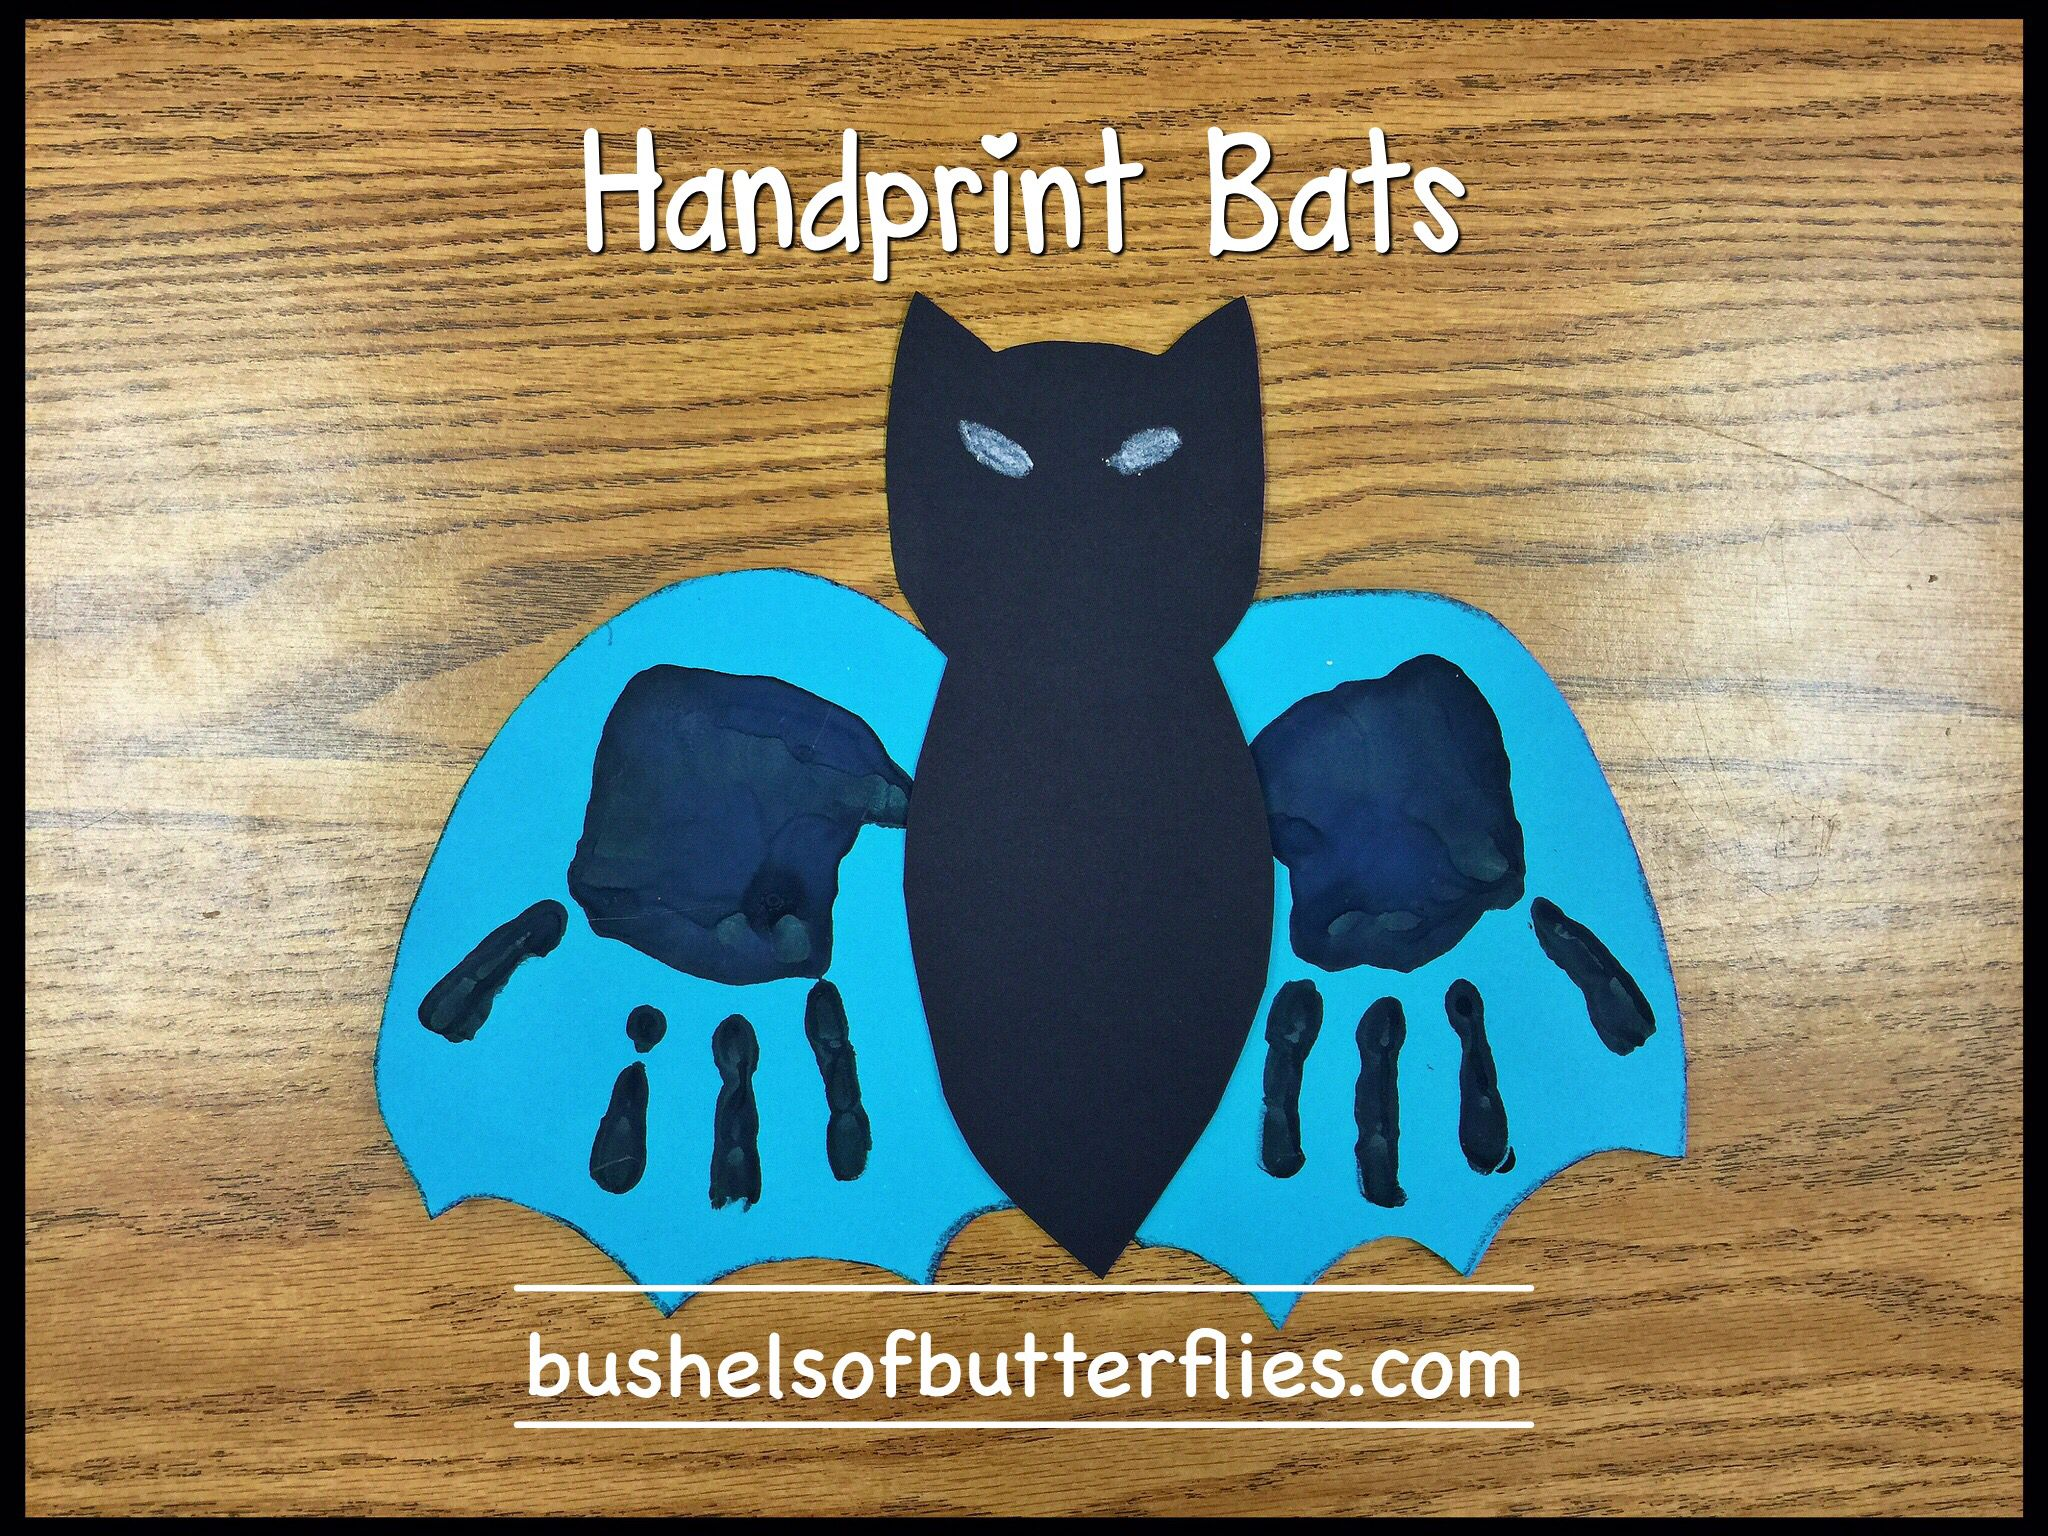 Handprint Bats Art Halloween Projects Kindergarten Fun